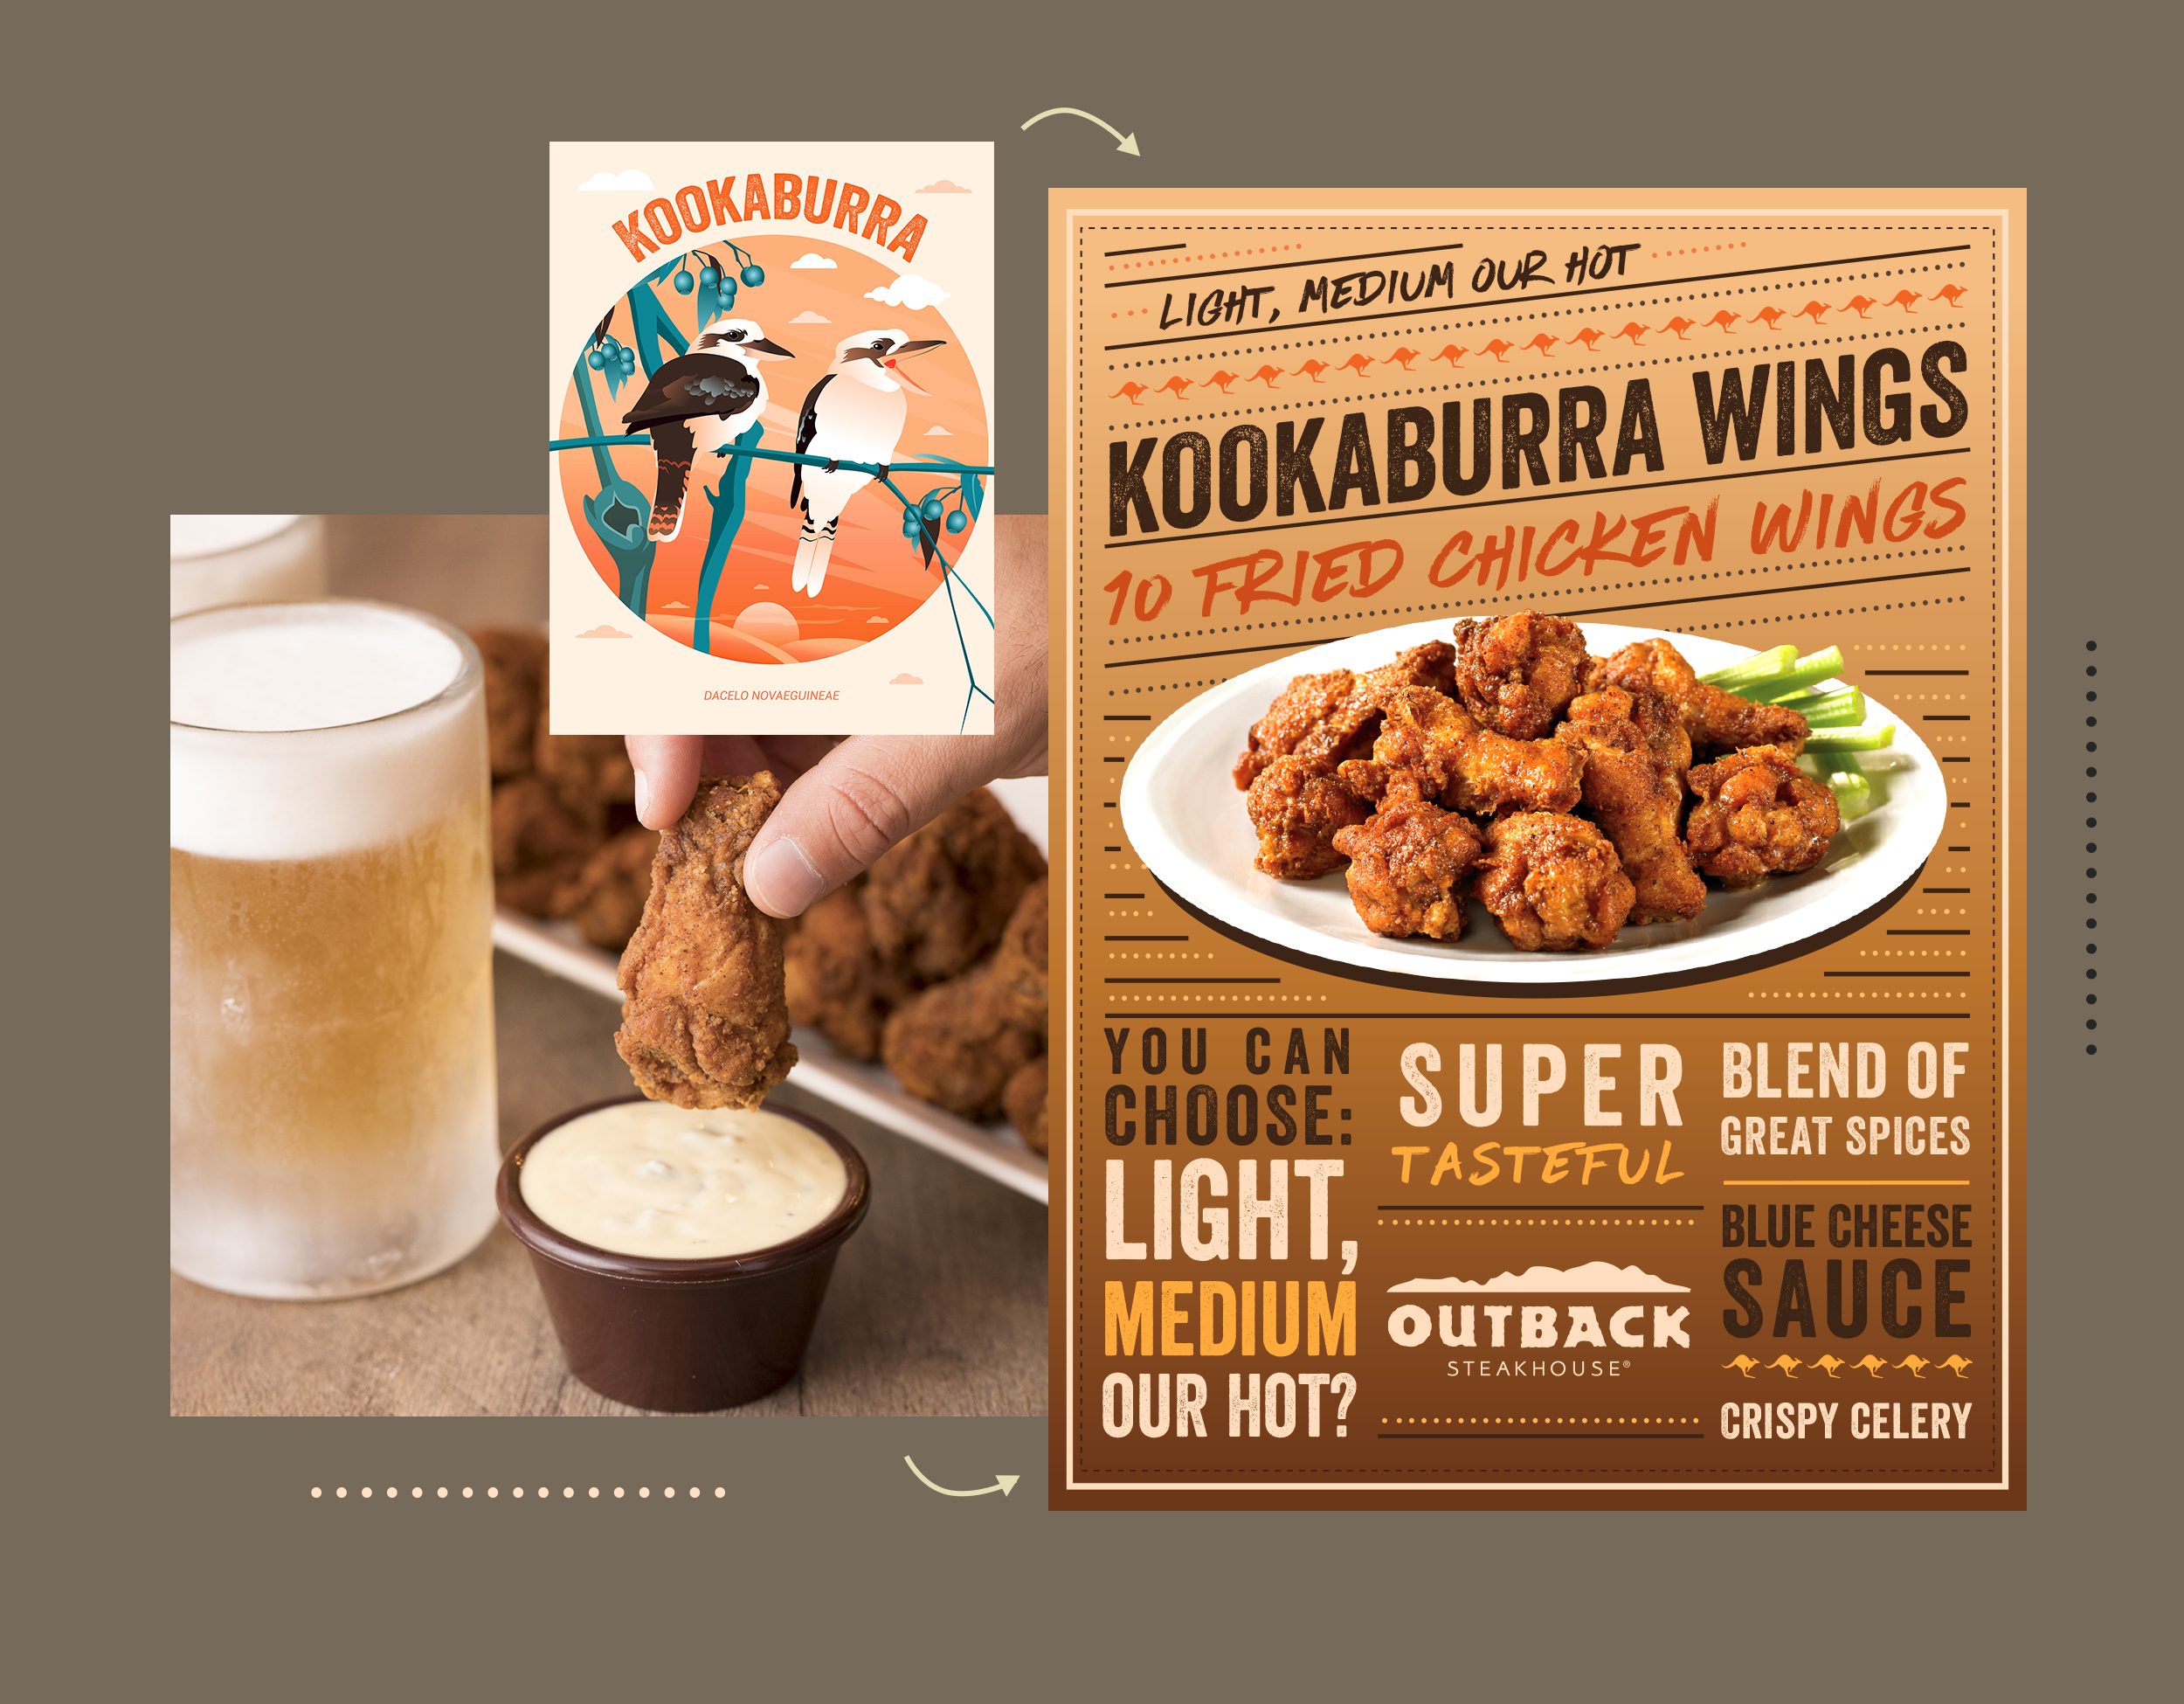 Kookaburra Wings